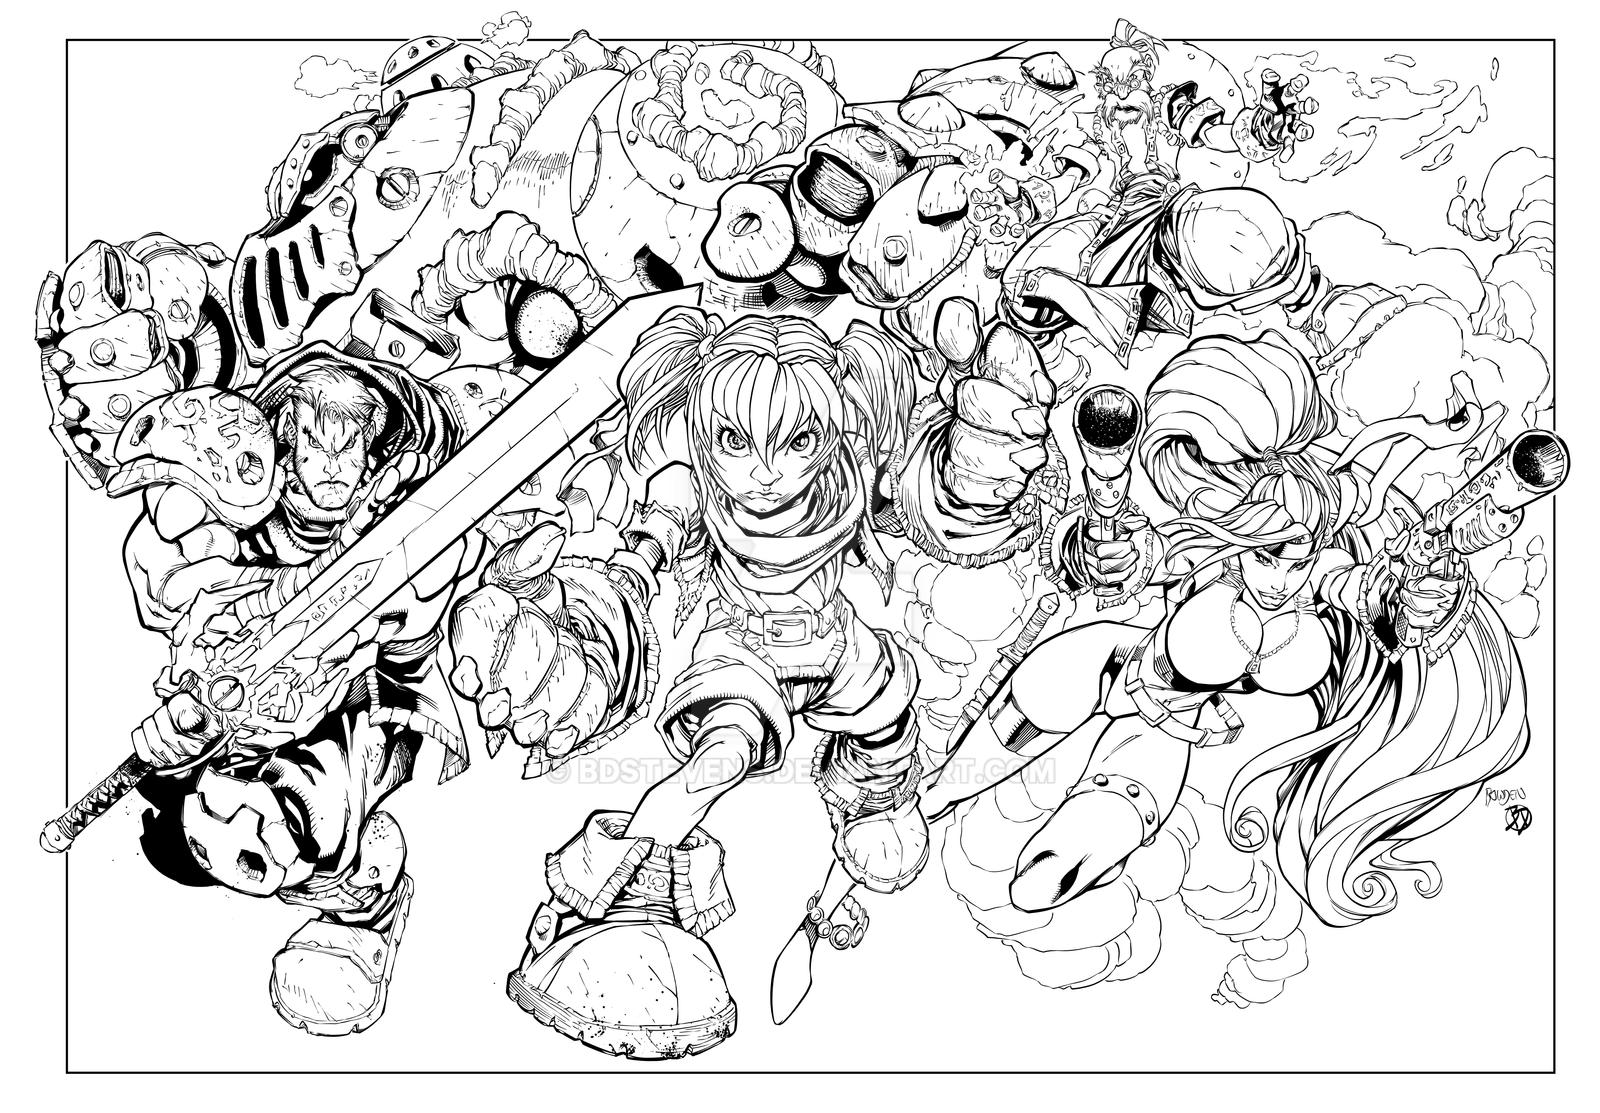 Battle Chasers!! by BDStevens